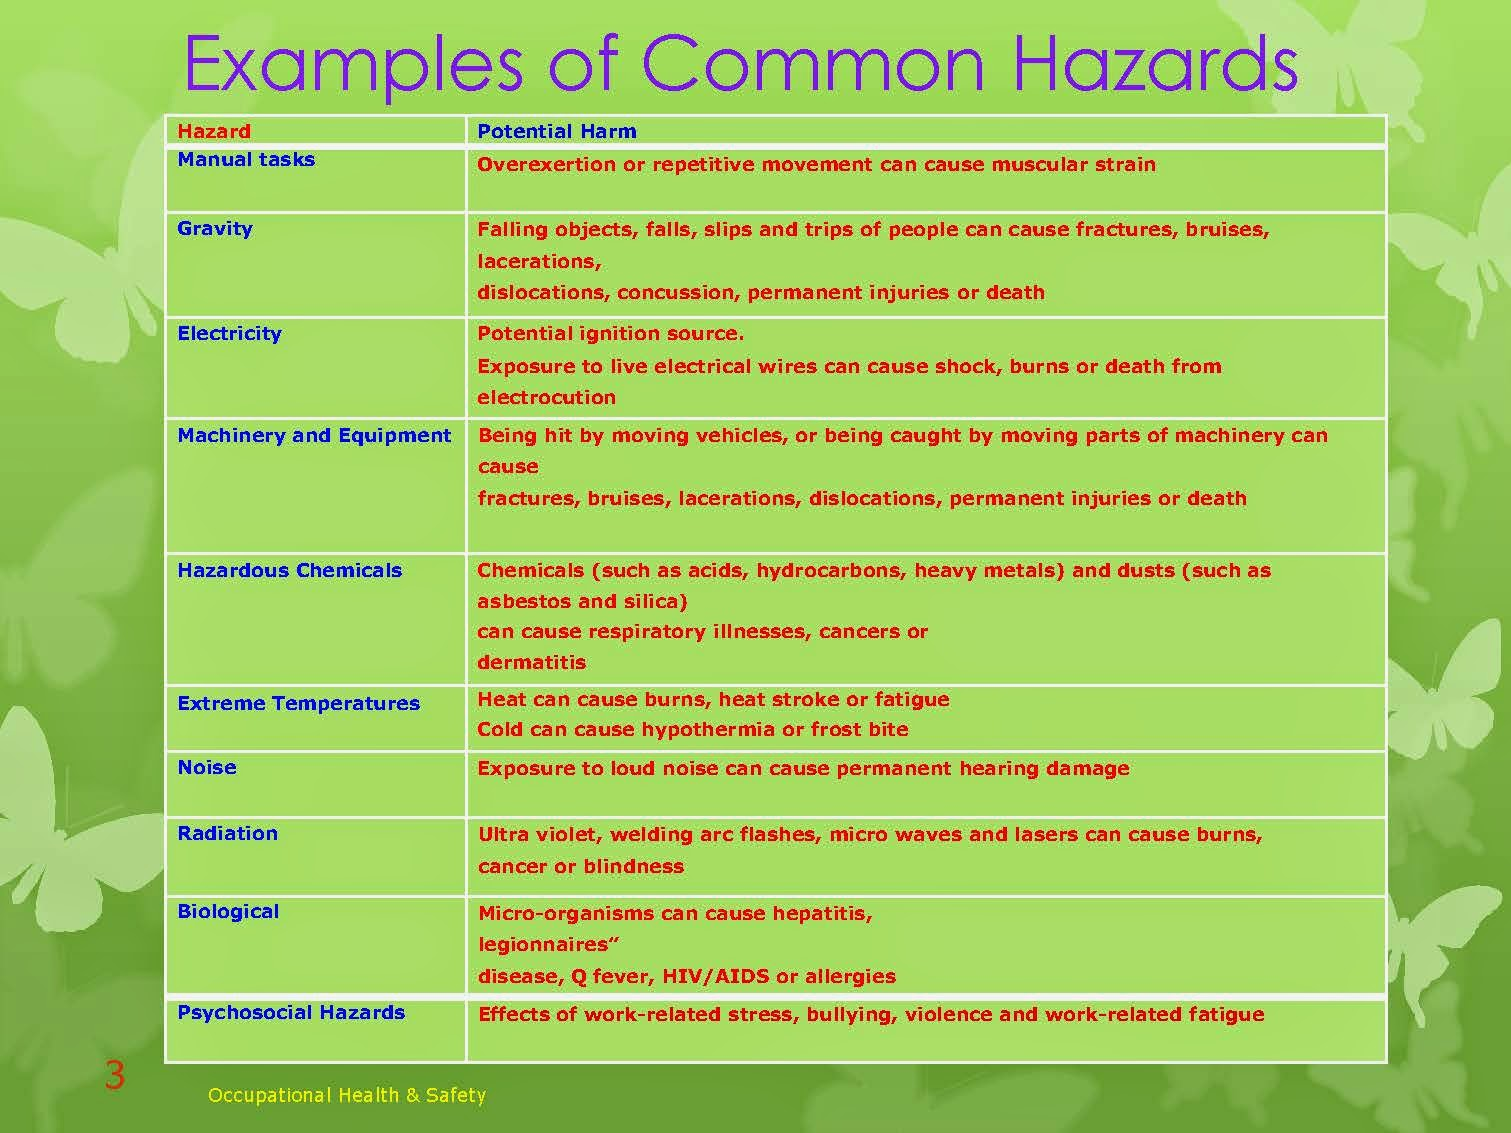 EXAMPLES OF COMMON HAZARDS